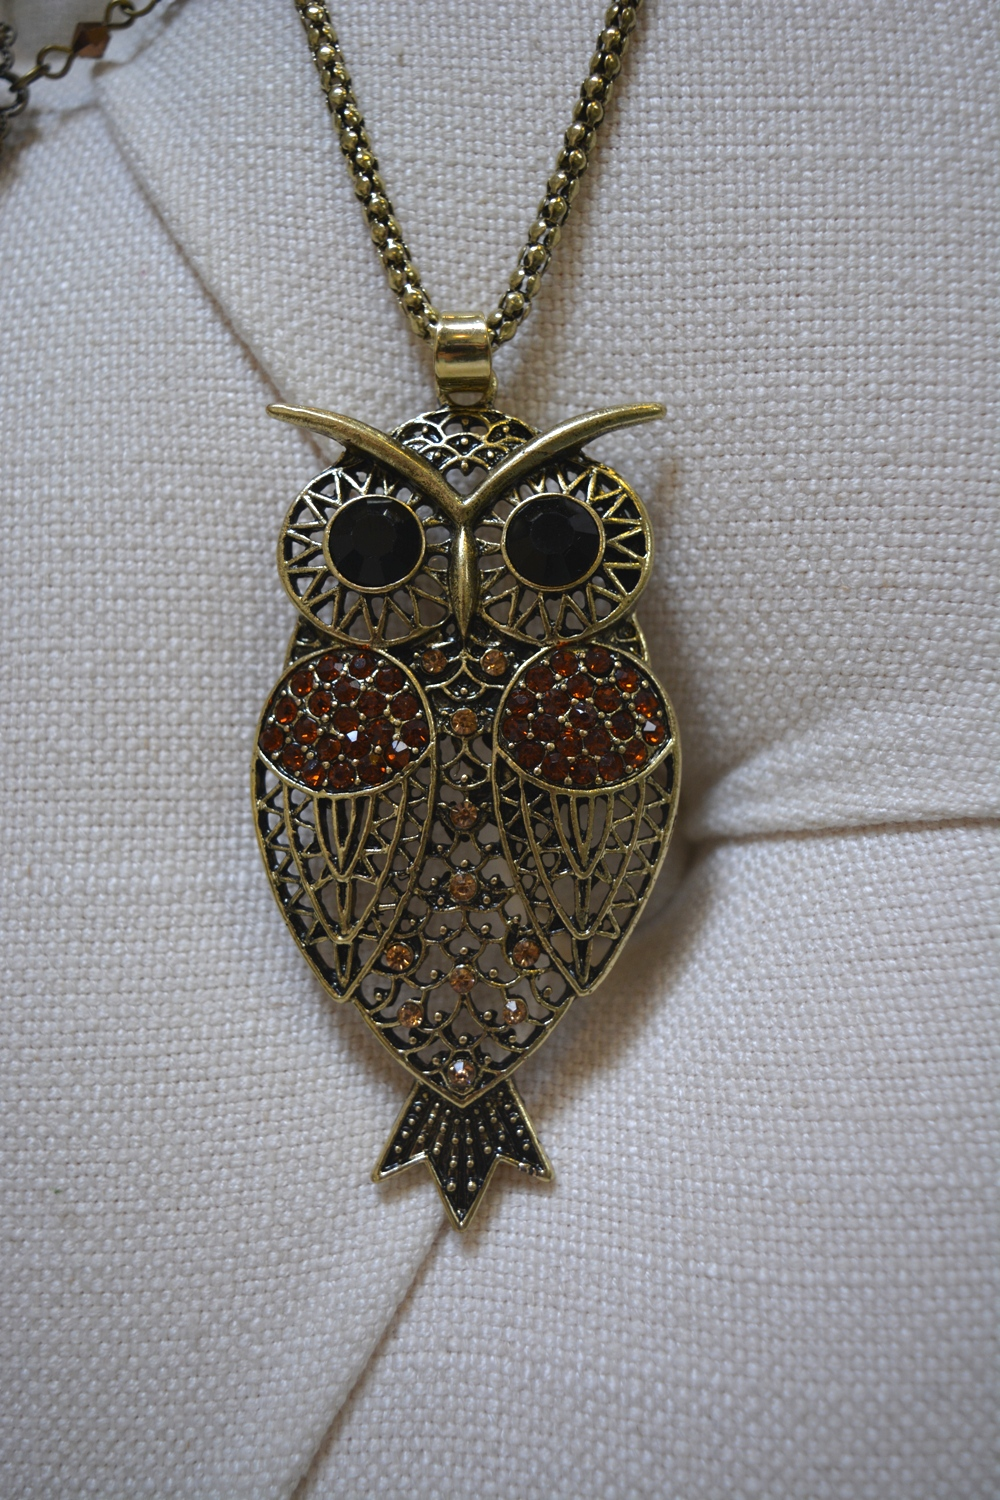 Embellished Owl Pendant Necklace ~ €14.00